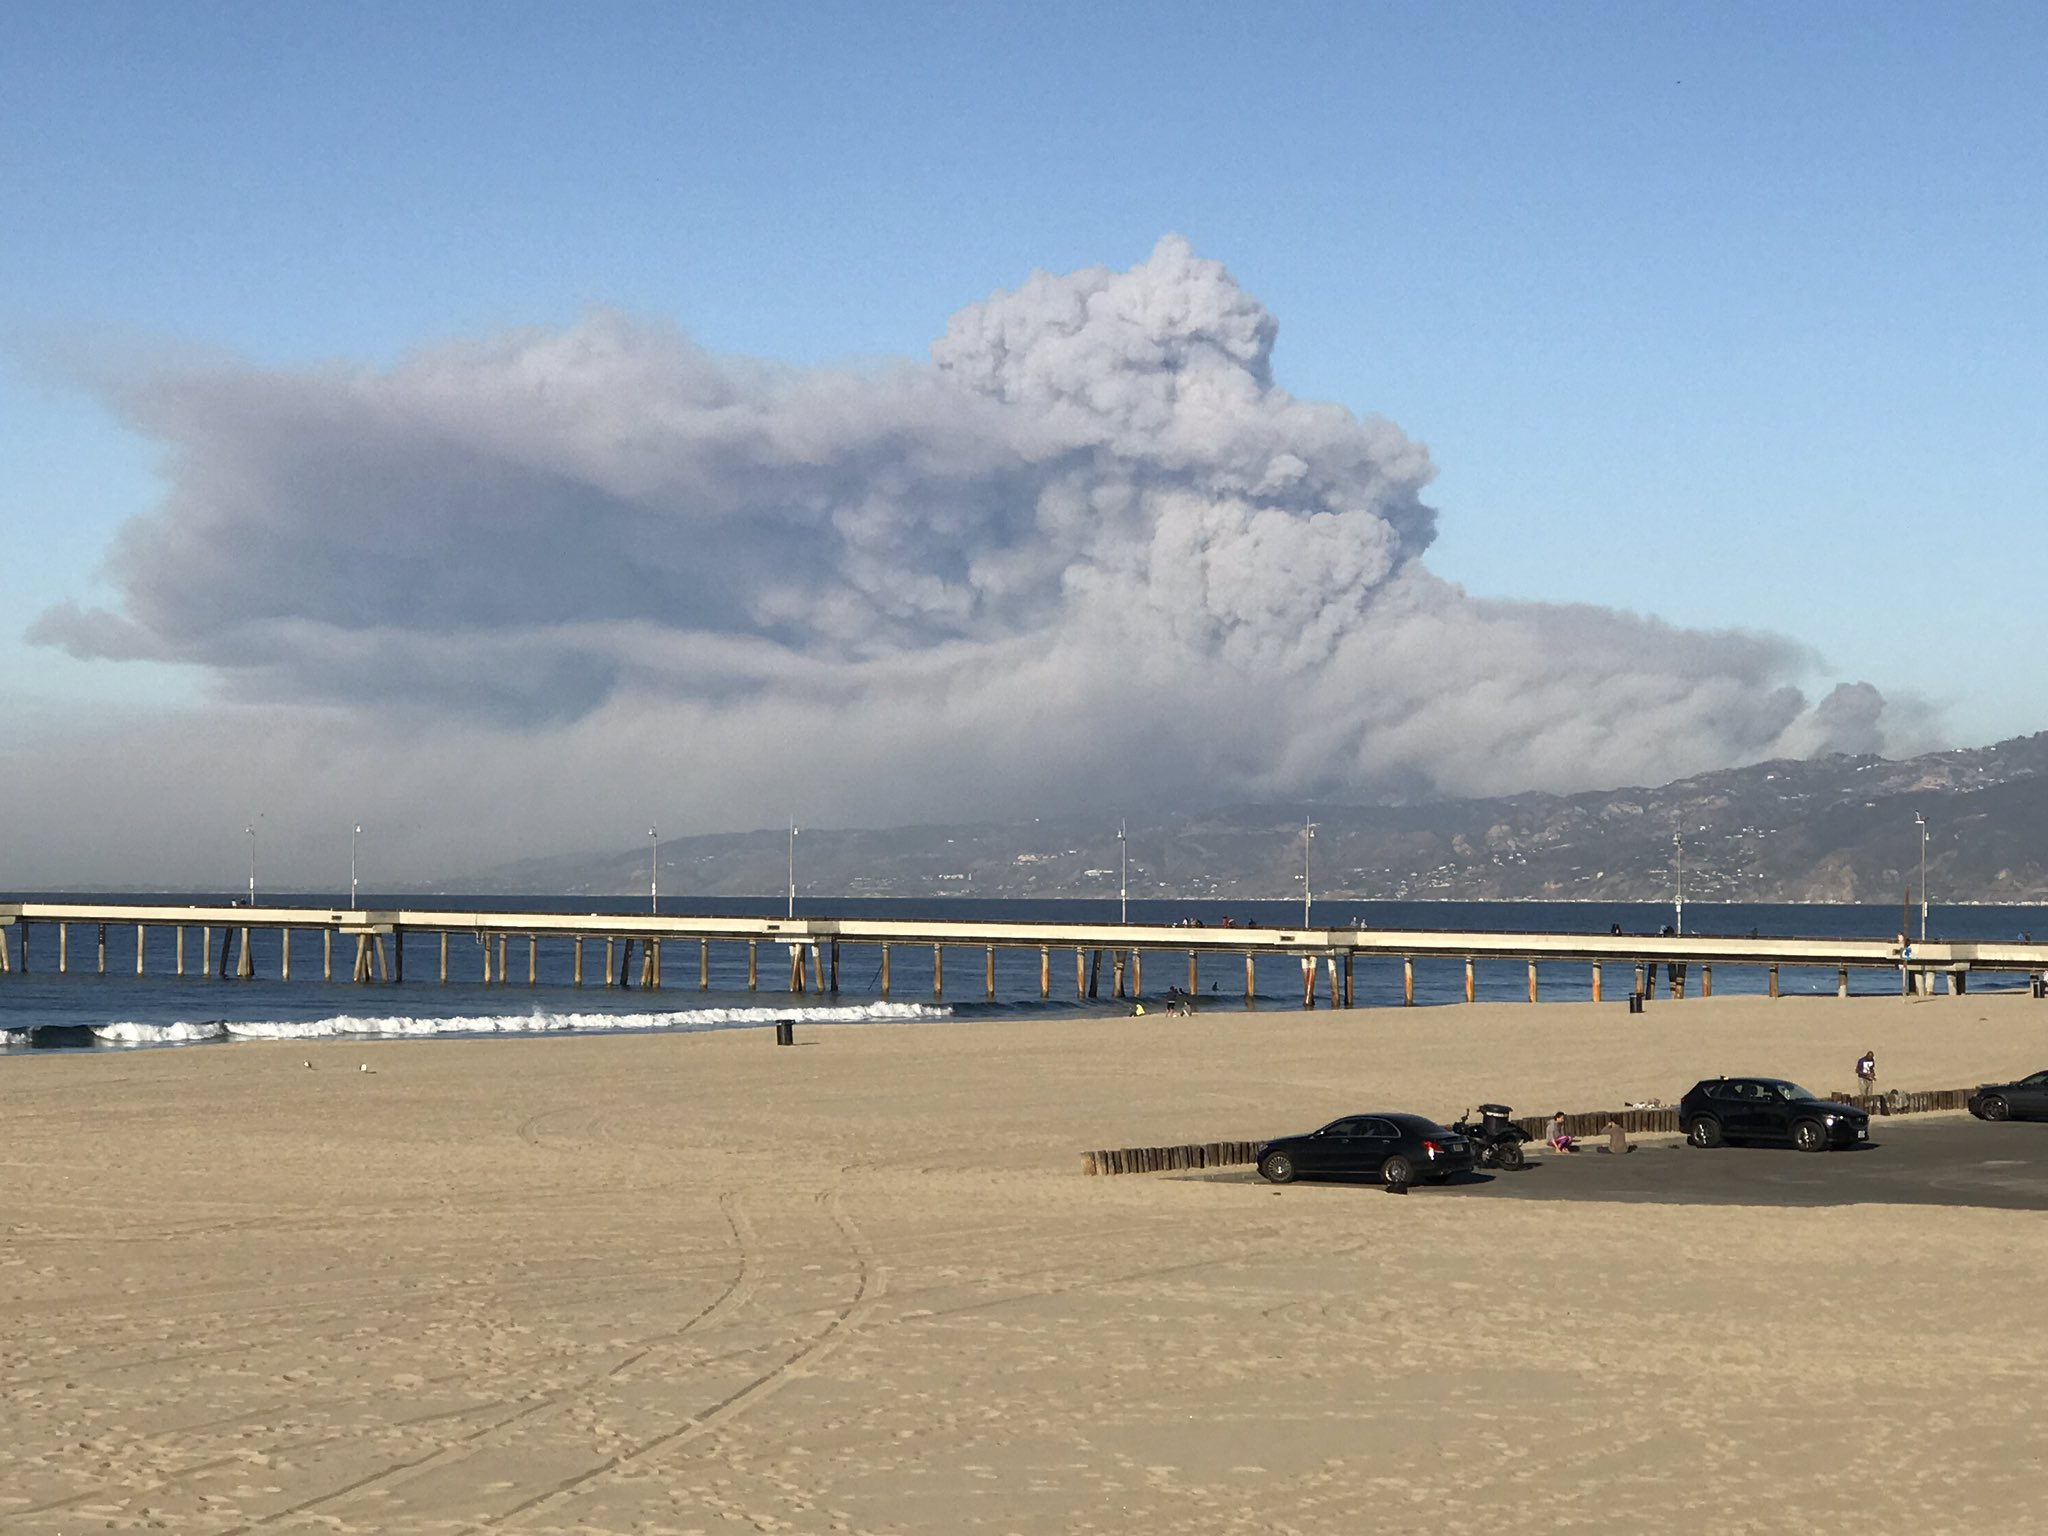 <div class='meta'><div class='origin-logo' data-origin='none'></div><span class='caption-text' data-credit='ZimVC/Twitter'>Michael Zimmerman shared this photo on Twitter on Friday of the Woolsey Fire near Malibu.</span></div>